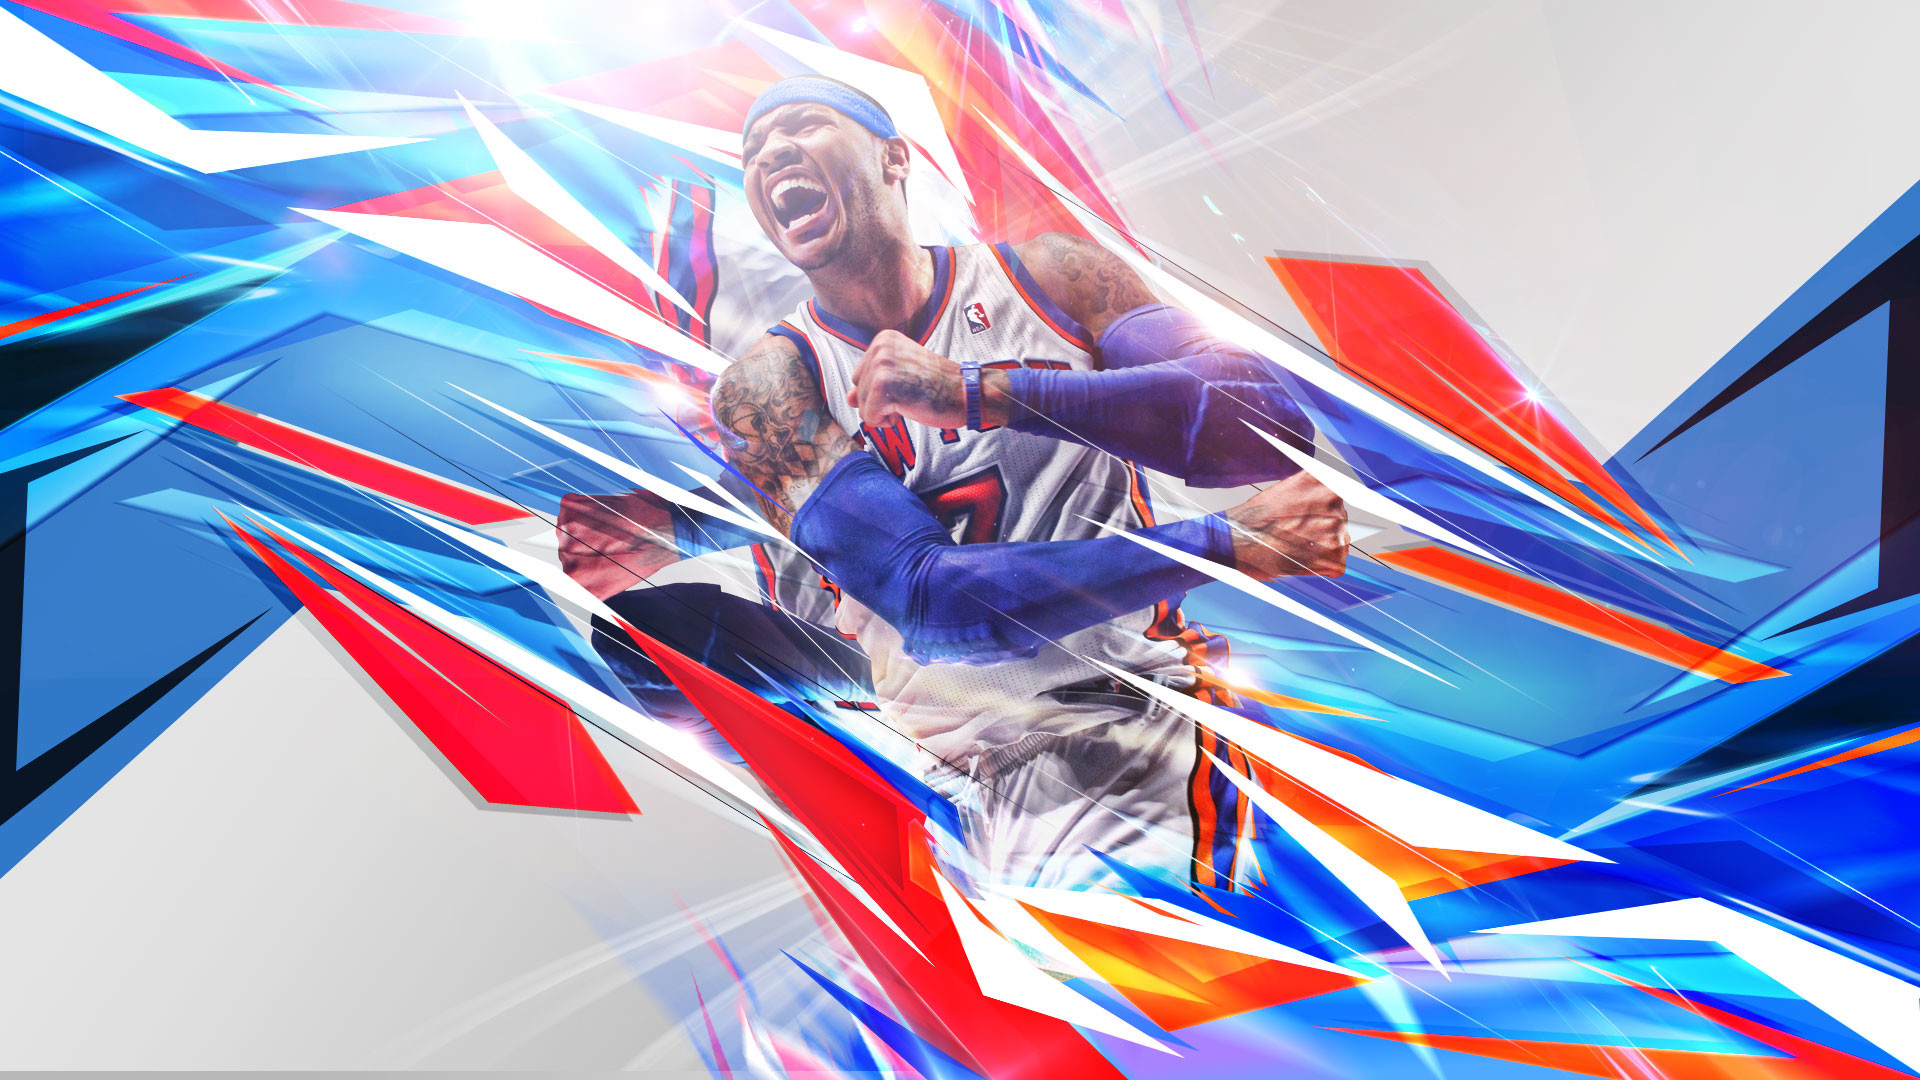 nba wallpapers 2018 hd 69 images